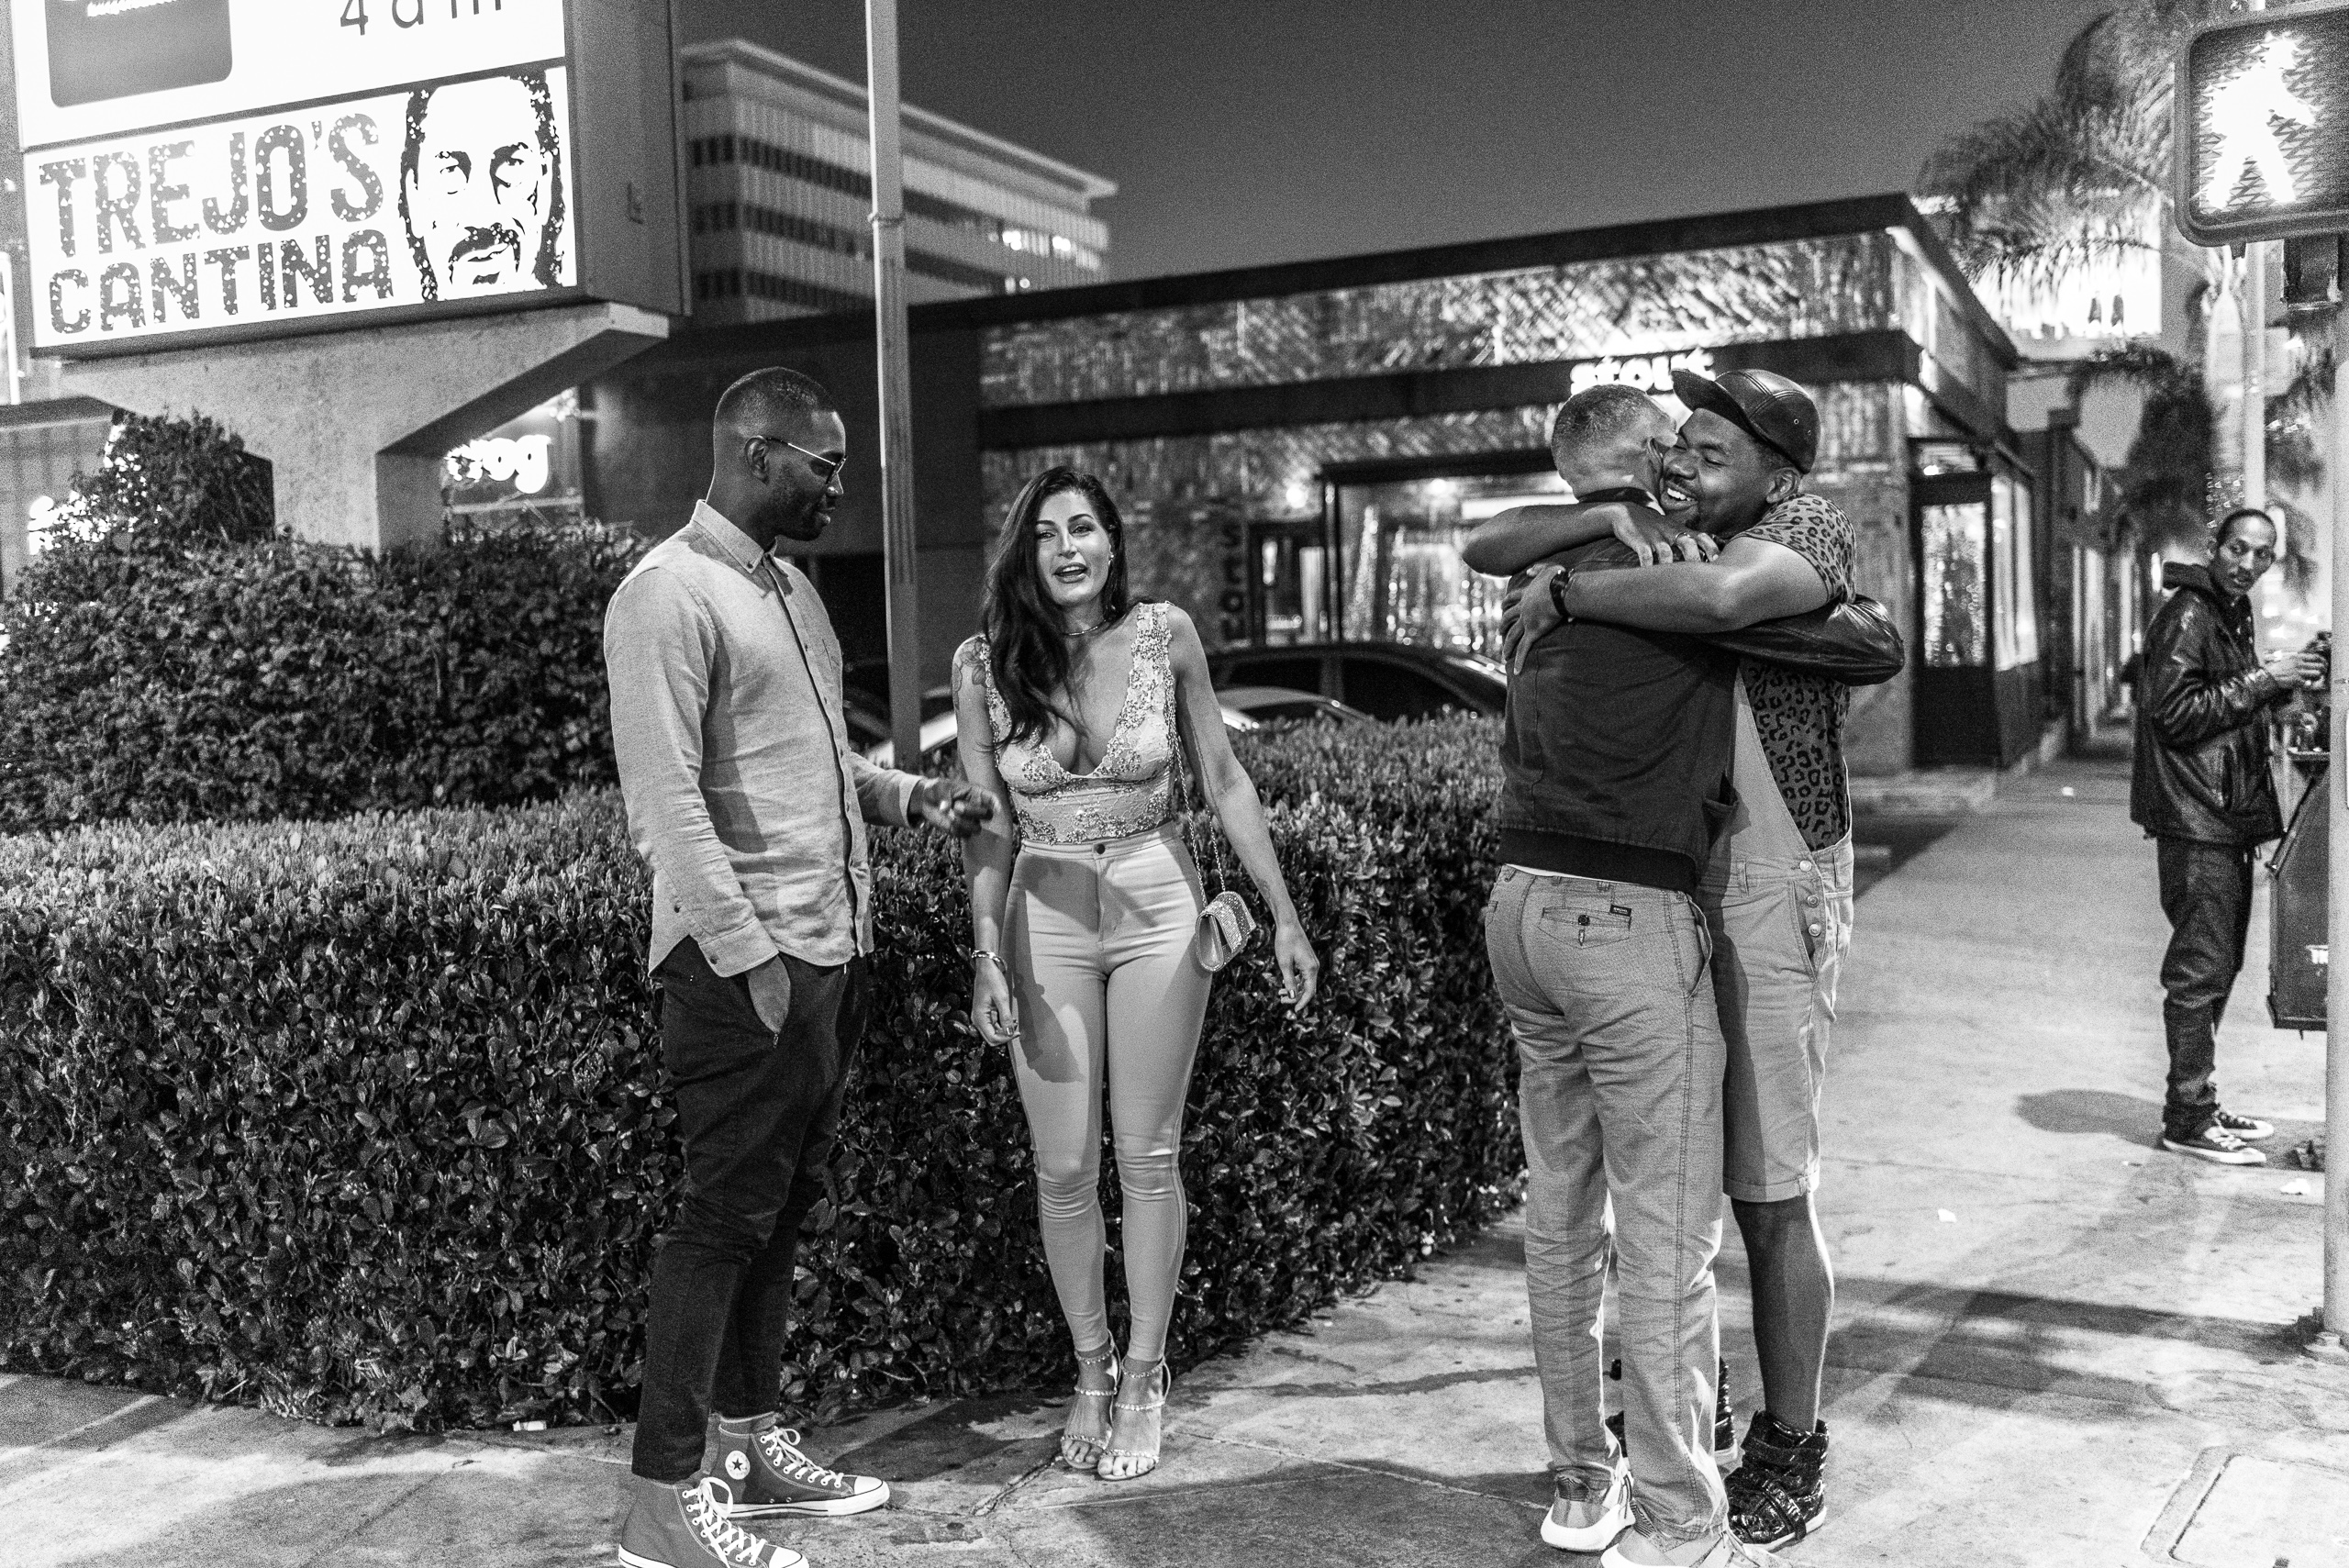 4 friends talk and hug on a Hollywood street corner